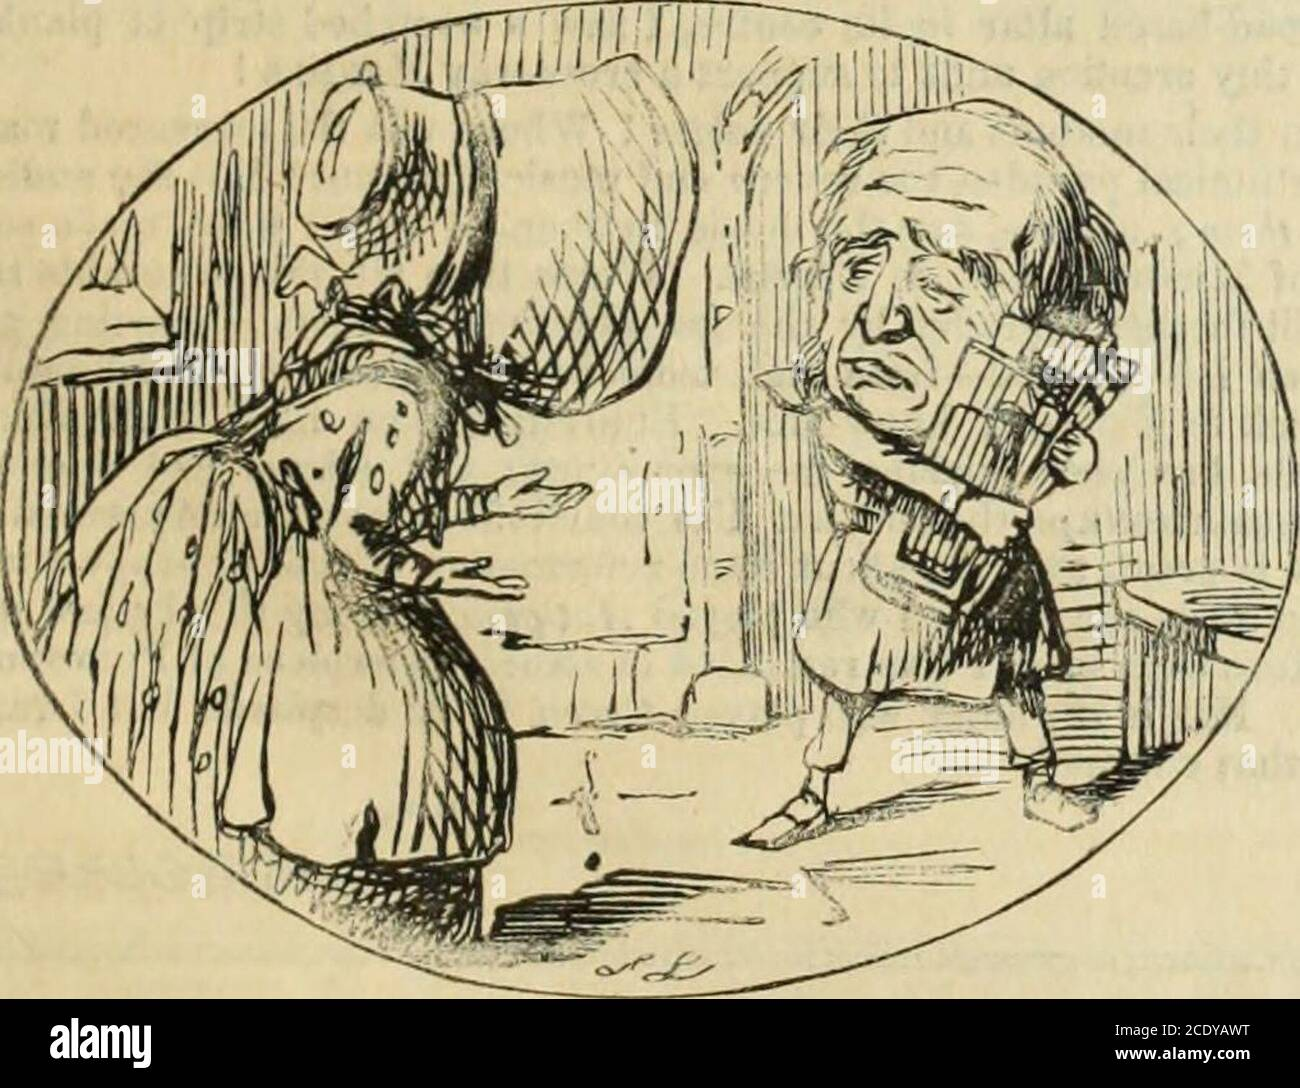 Punch There Was Once A Very Bad Boy And His Name Was Peel He Would Go And Slide On The Scale Though He Had Been Toldit Was A Bad Thing To It is very often said however 'me and him/her are going out'. alamy